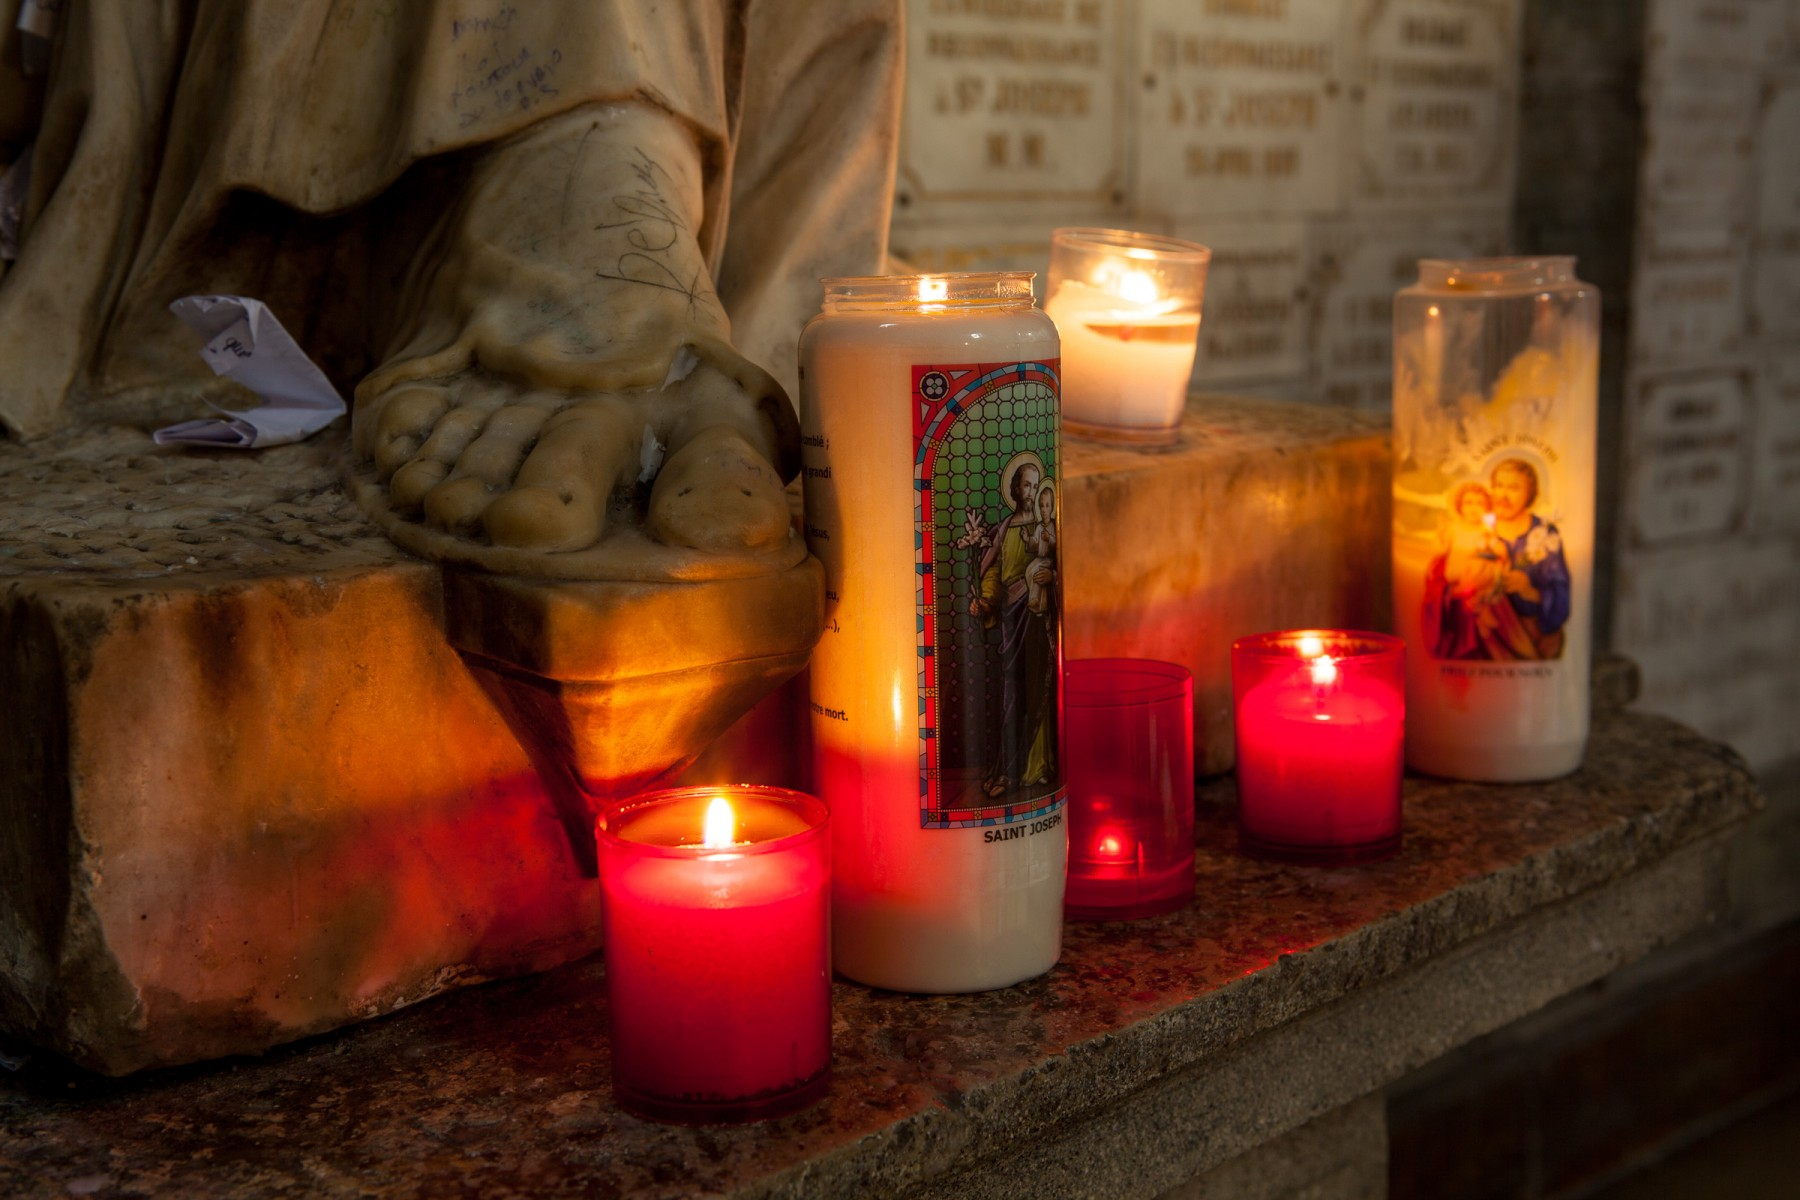 Offerings at the feet of St Joseph in Saint-Sulpice, Paris.